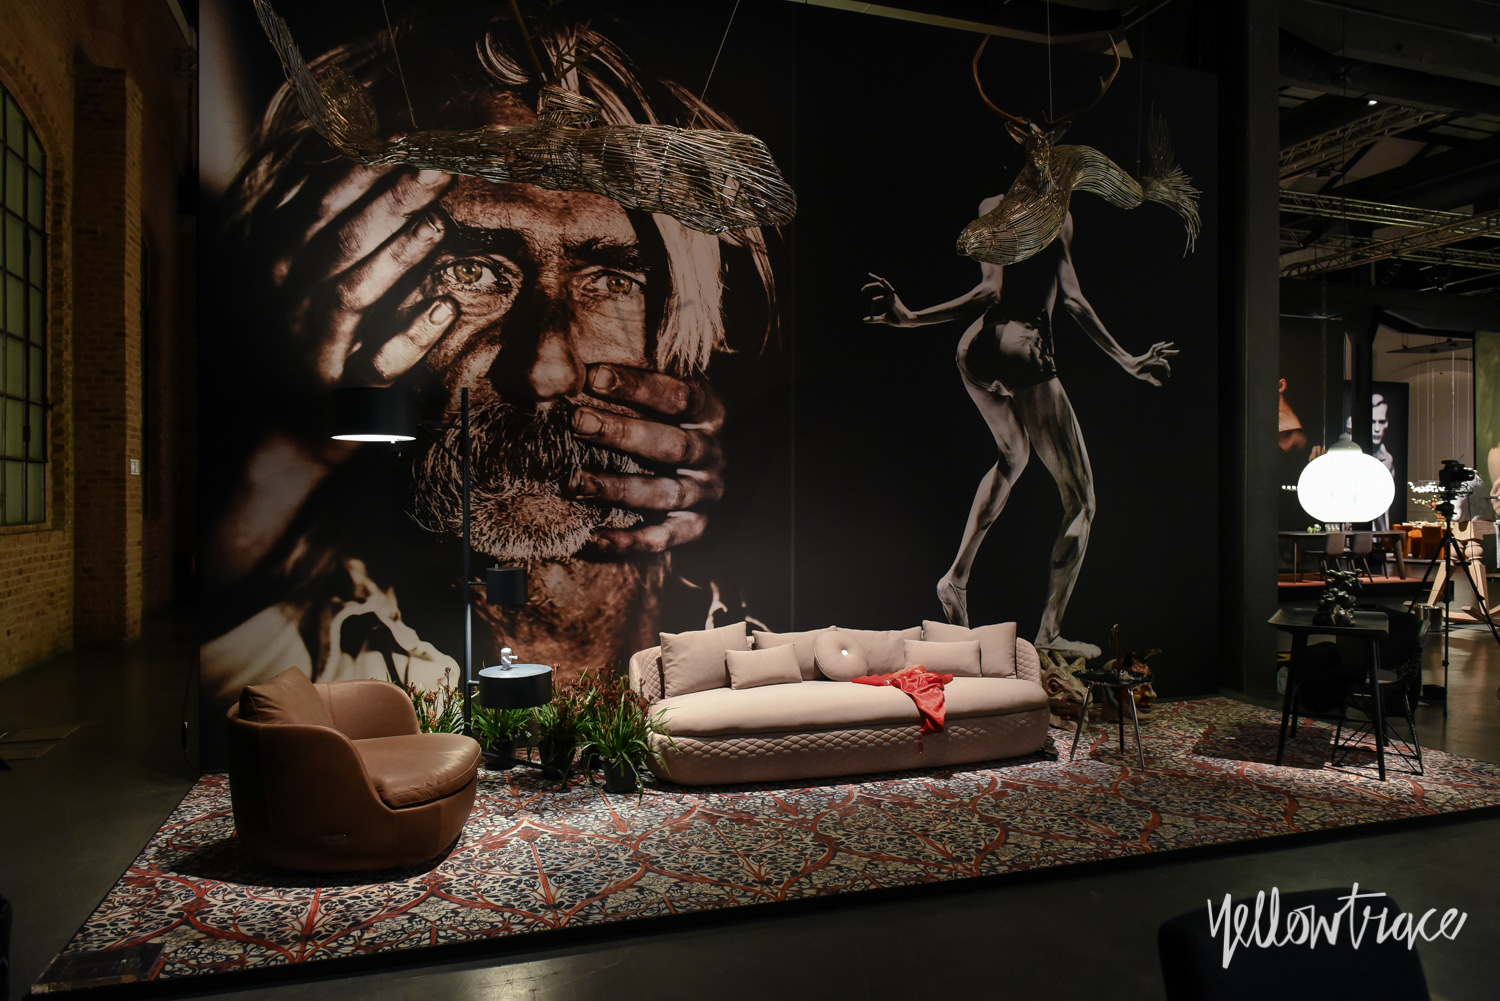 Moooi in tortona during salone del mobile for Salone mobile tortona